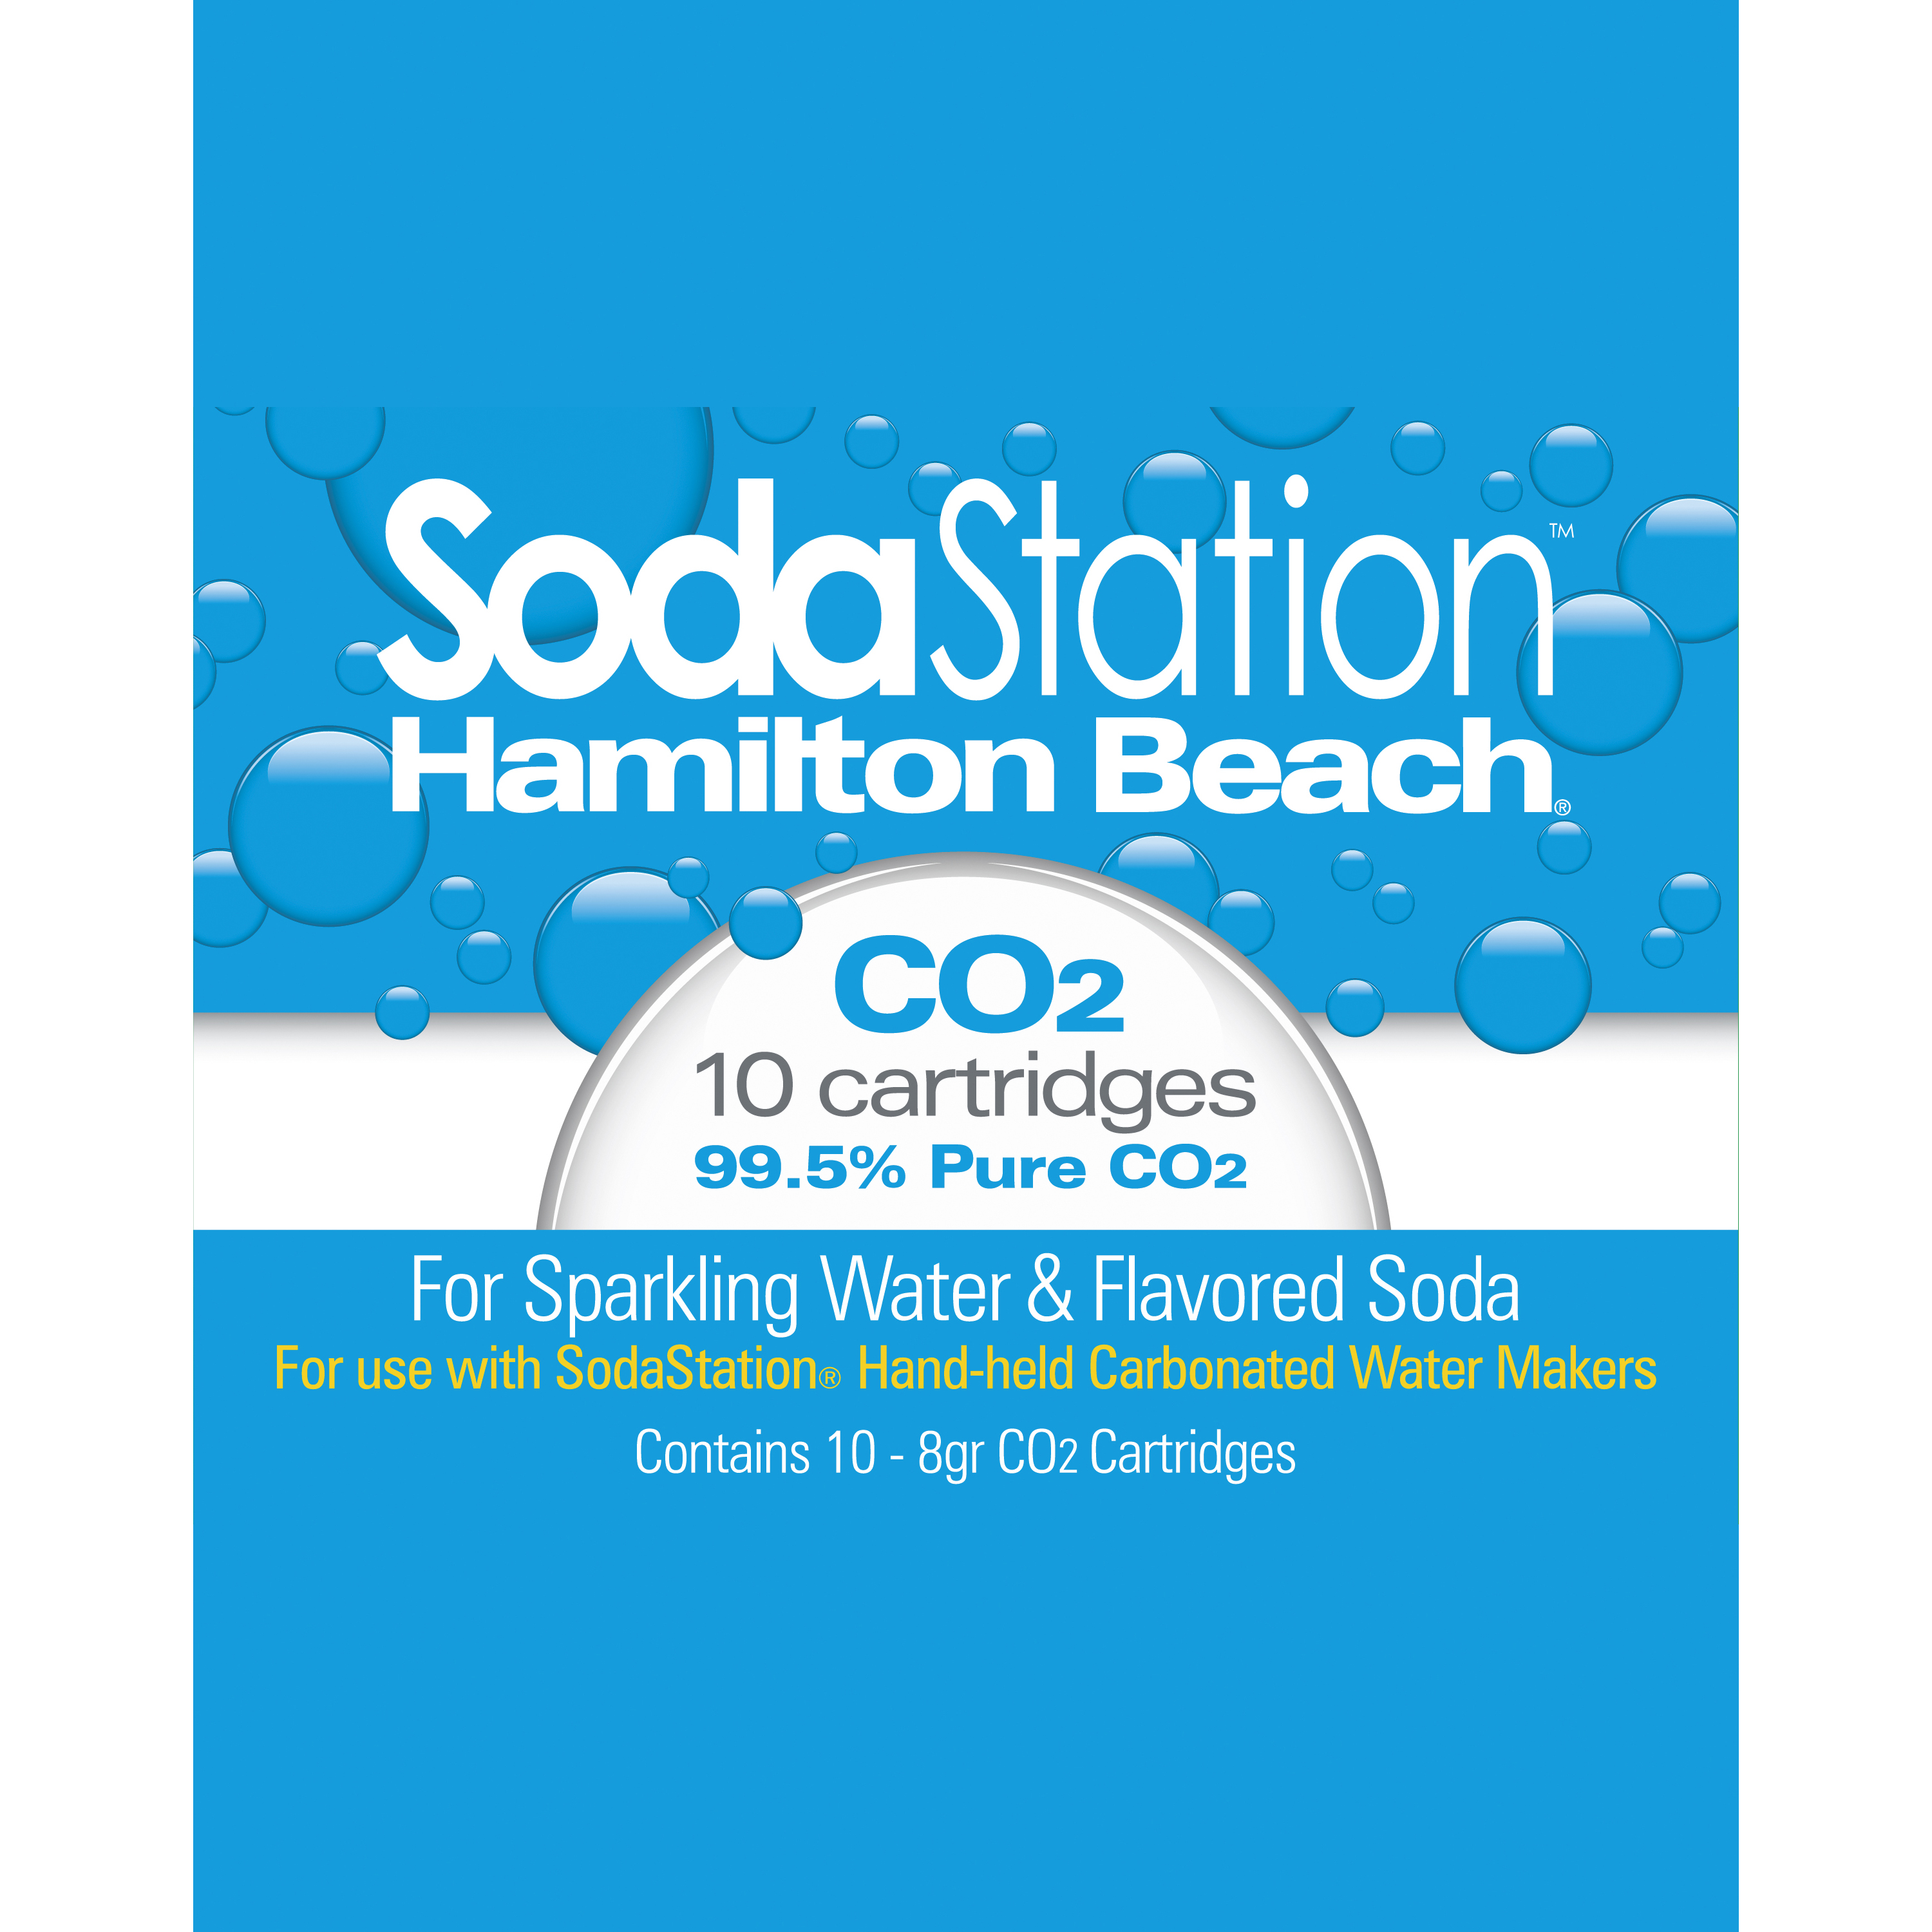 Hamilton Beach SodaStation CO2 Cartridges, 10pk